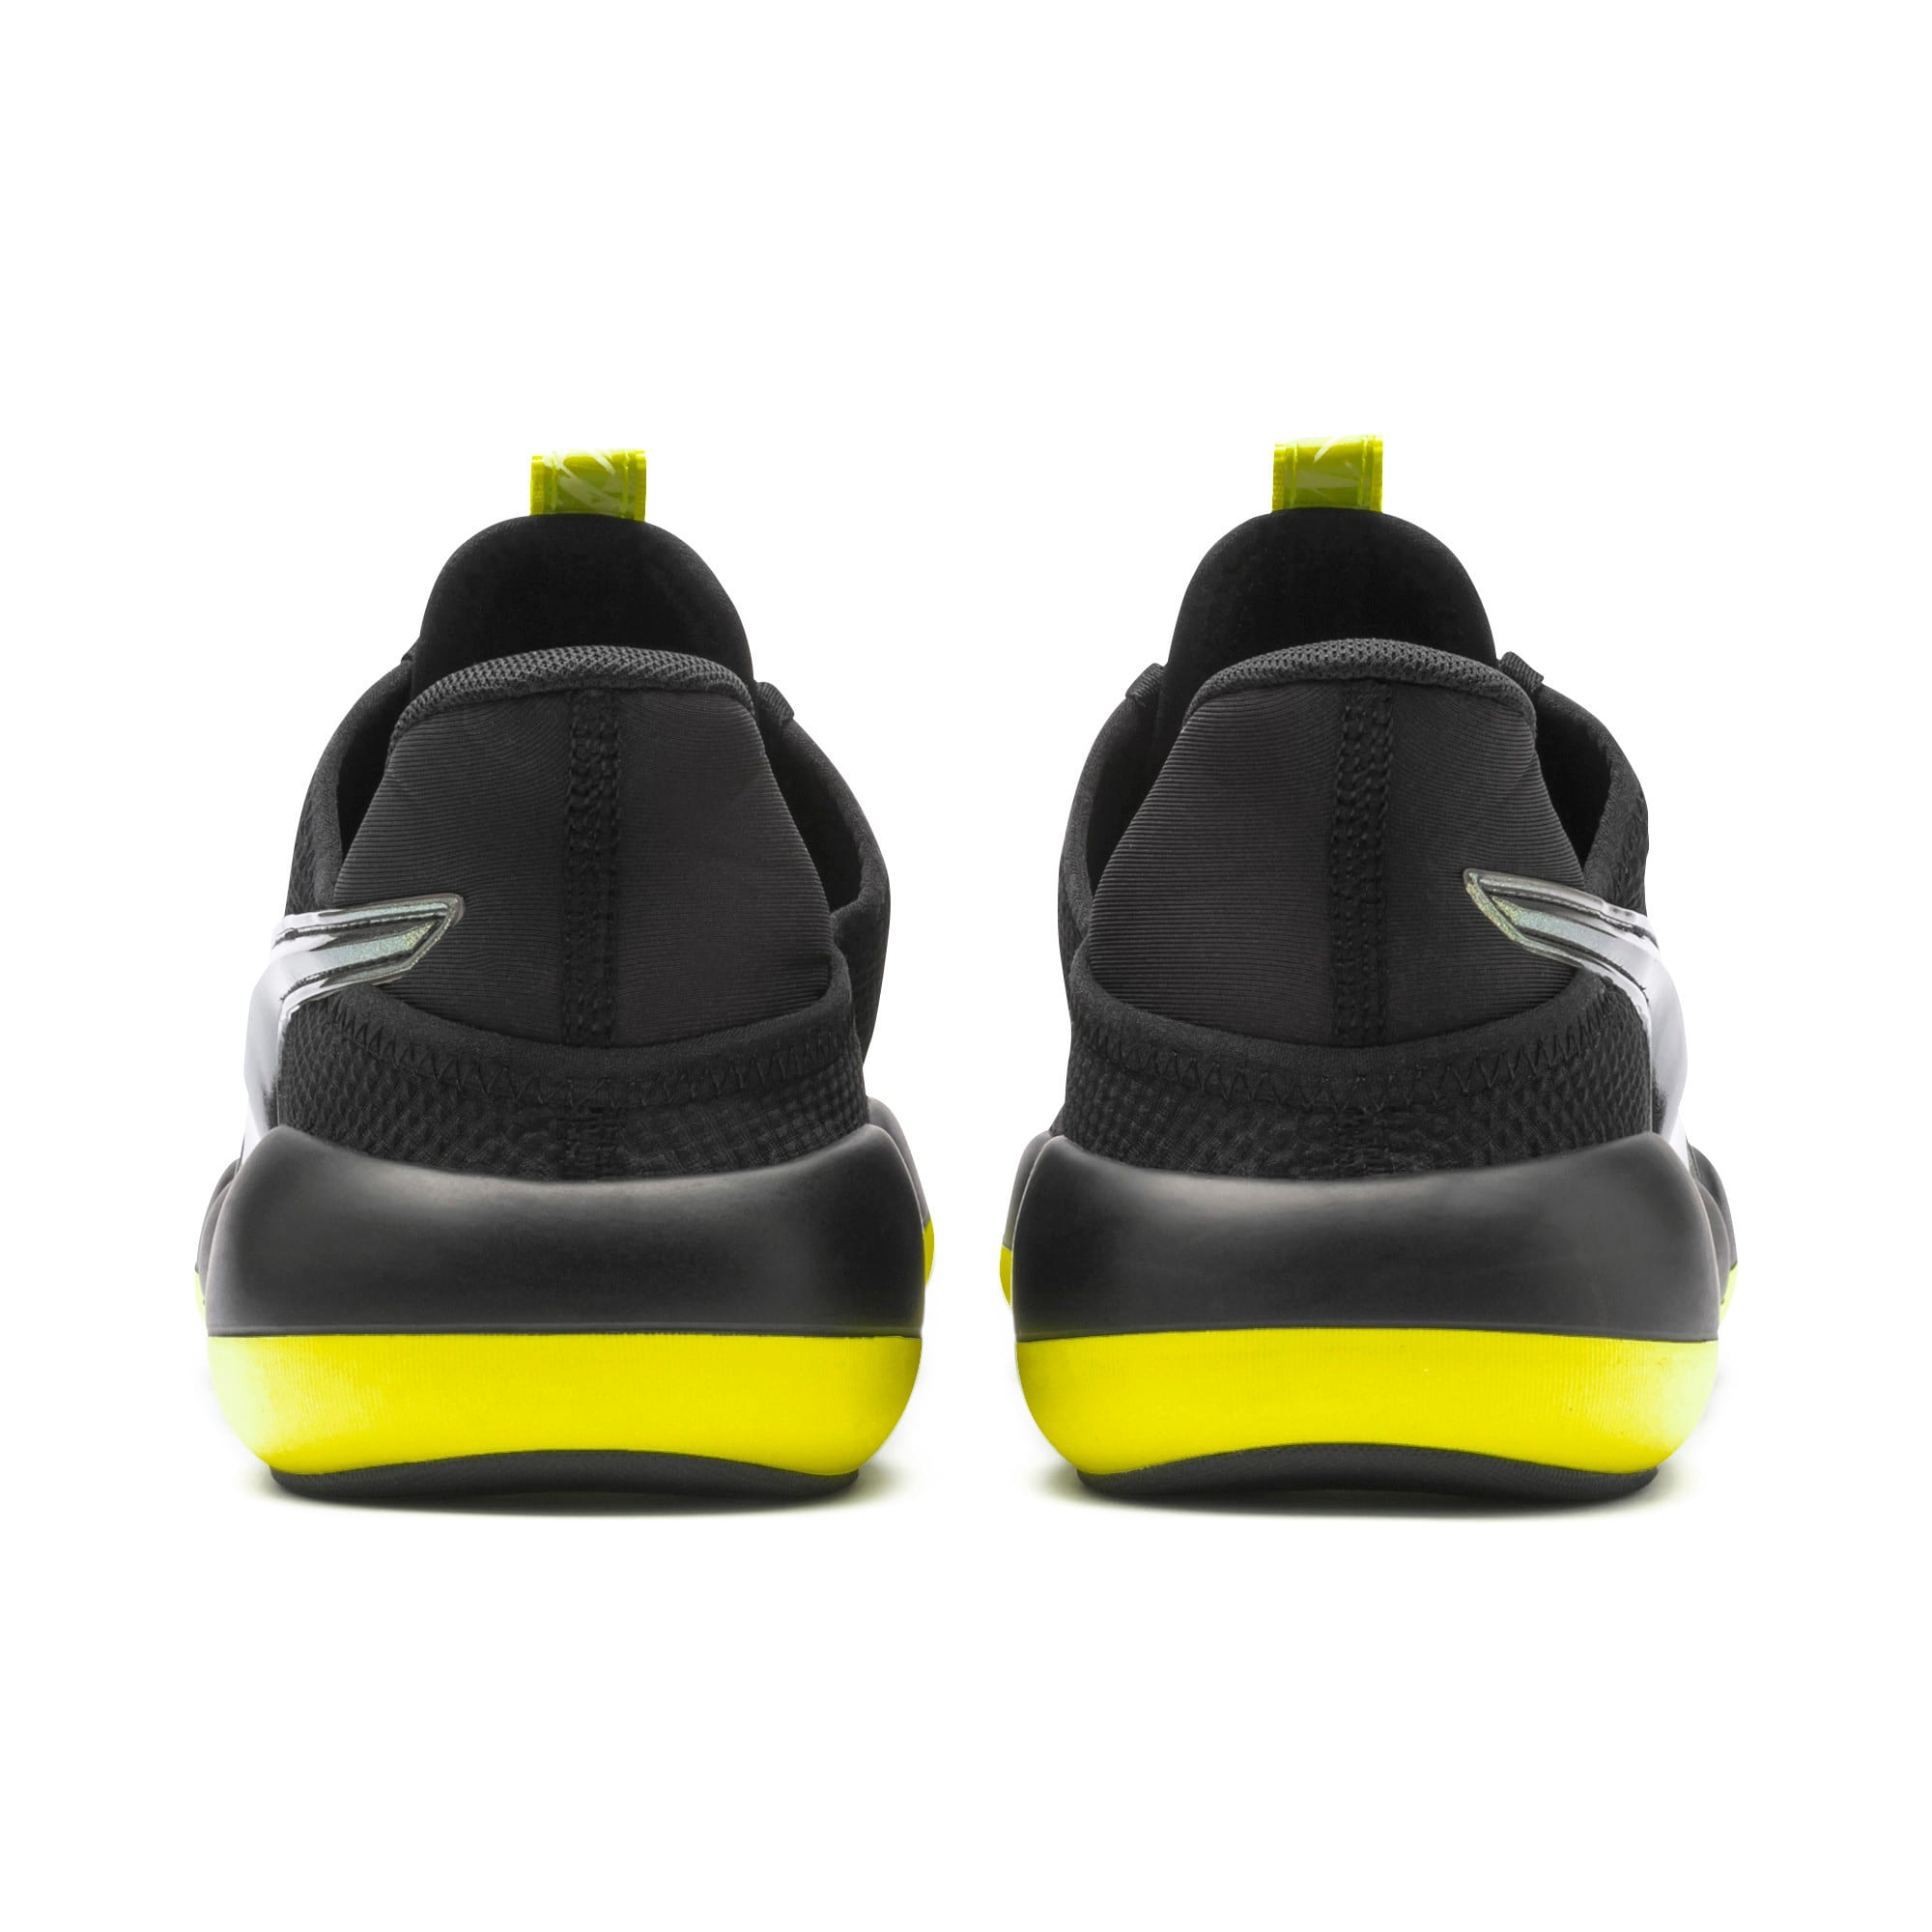 Thumbnail 4 of Mode XT Shift Women's Training Shoes, Puma Black-Yellow Alert, medium